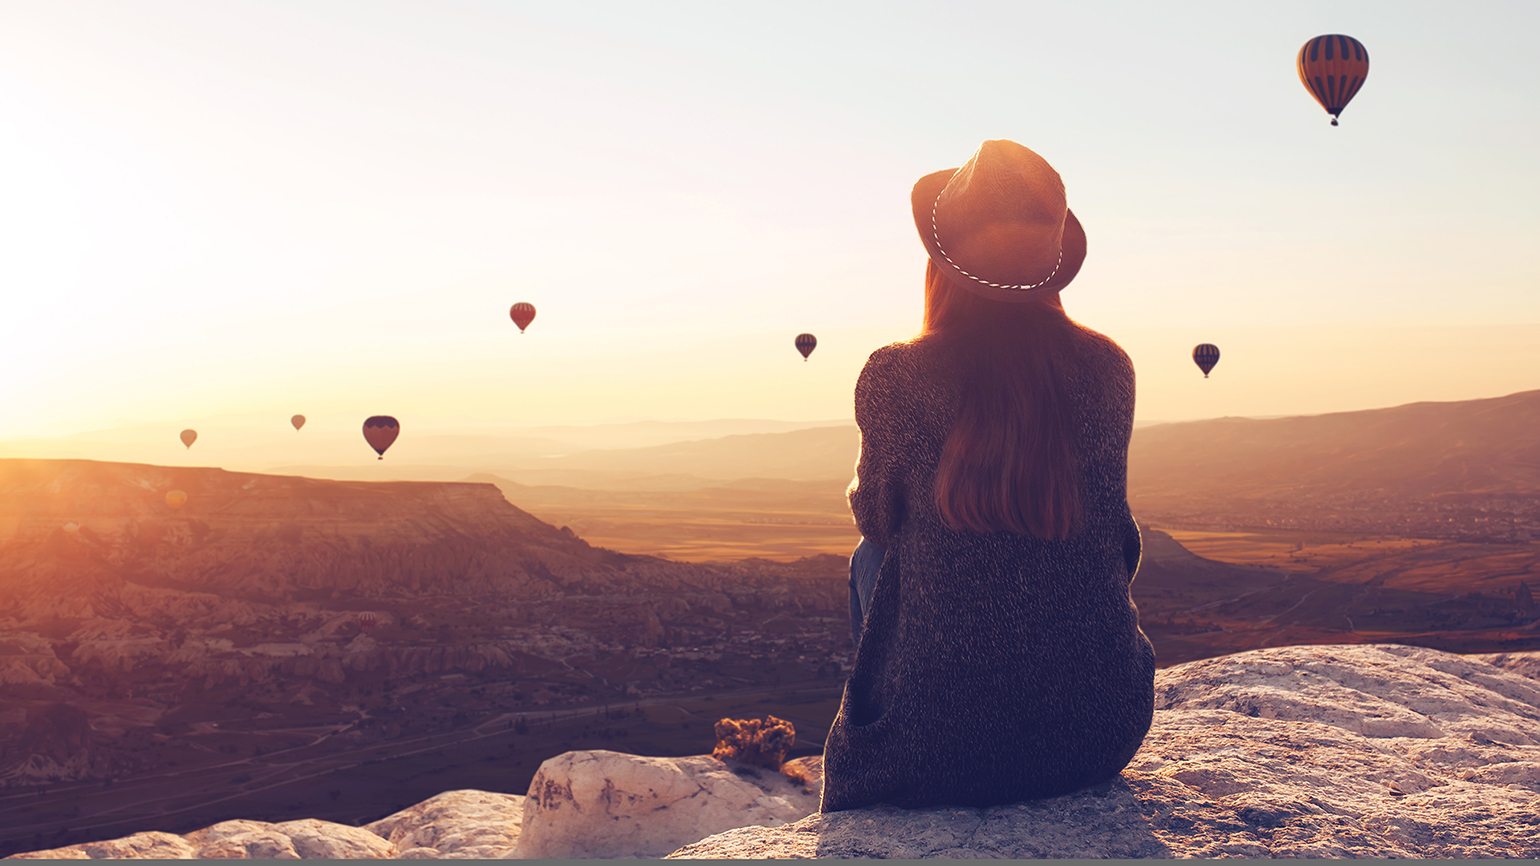 A woman watches hot air valloons float by